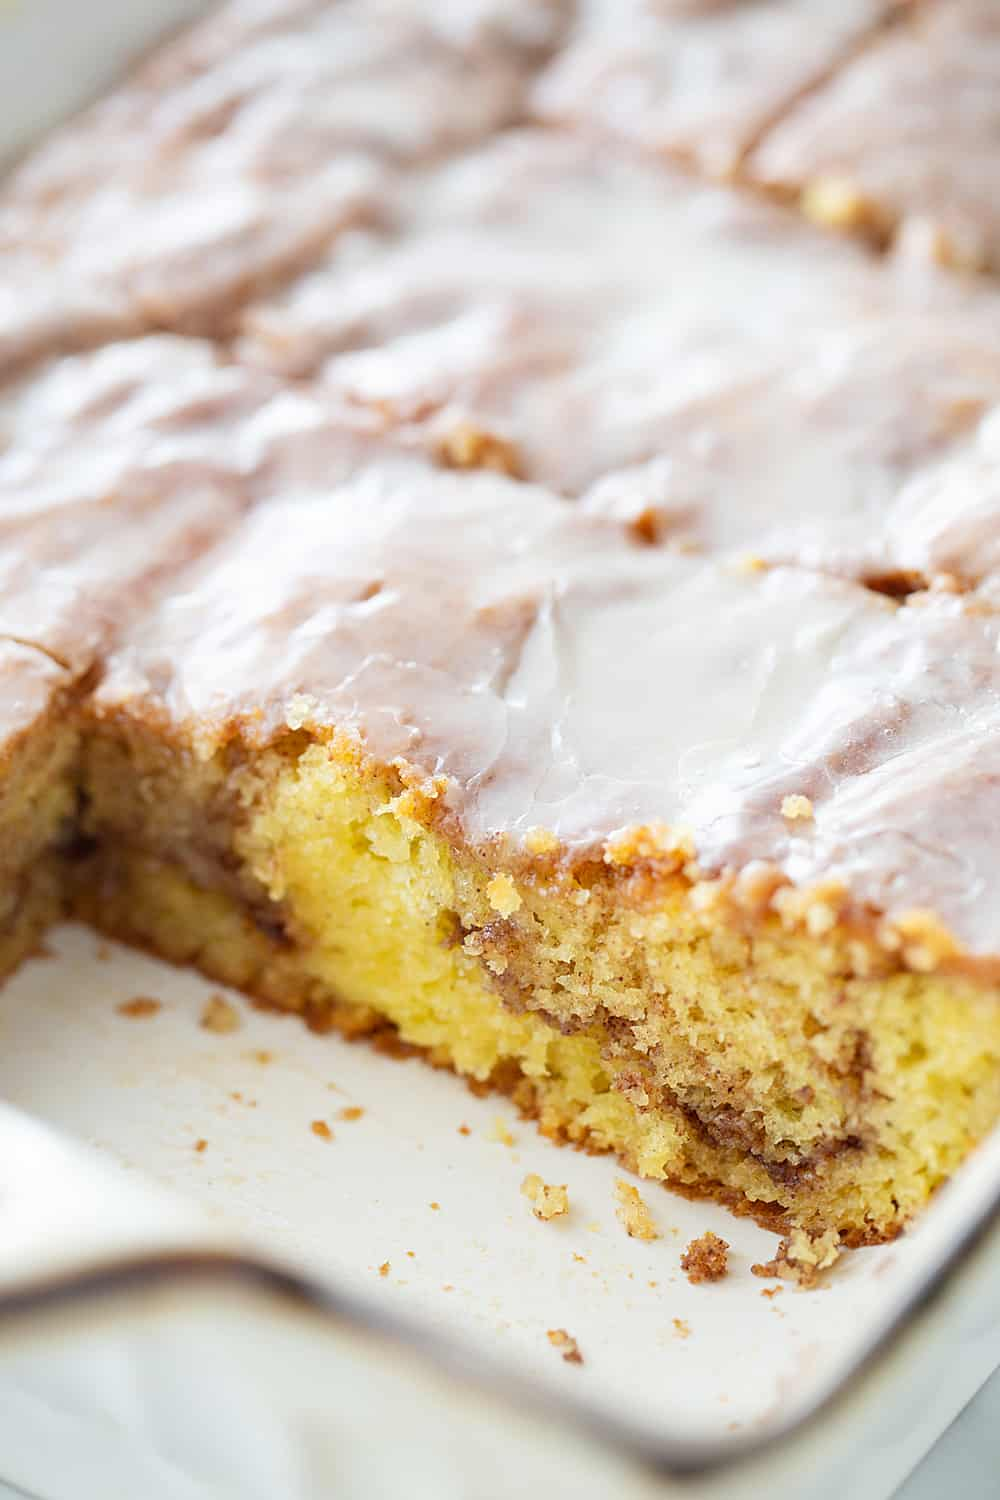 There's nothing like hot, cinnamon-swirled yellow cake topped with powdered sugar icing. Dessert or breakfast? Honey bun cake is both! #honeybun #cinnamonroll #cakemix #cakemixrecipe #honeybuncake #baking #dessert #brunch #halfscratched #yellowcake #easyrecipe